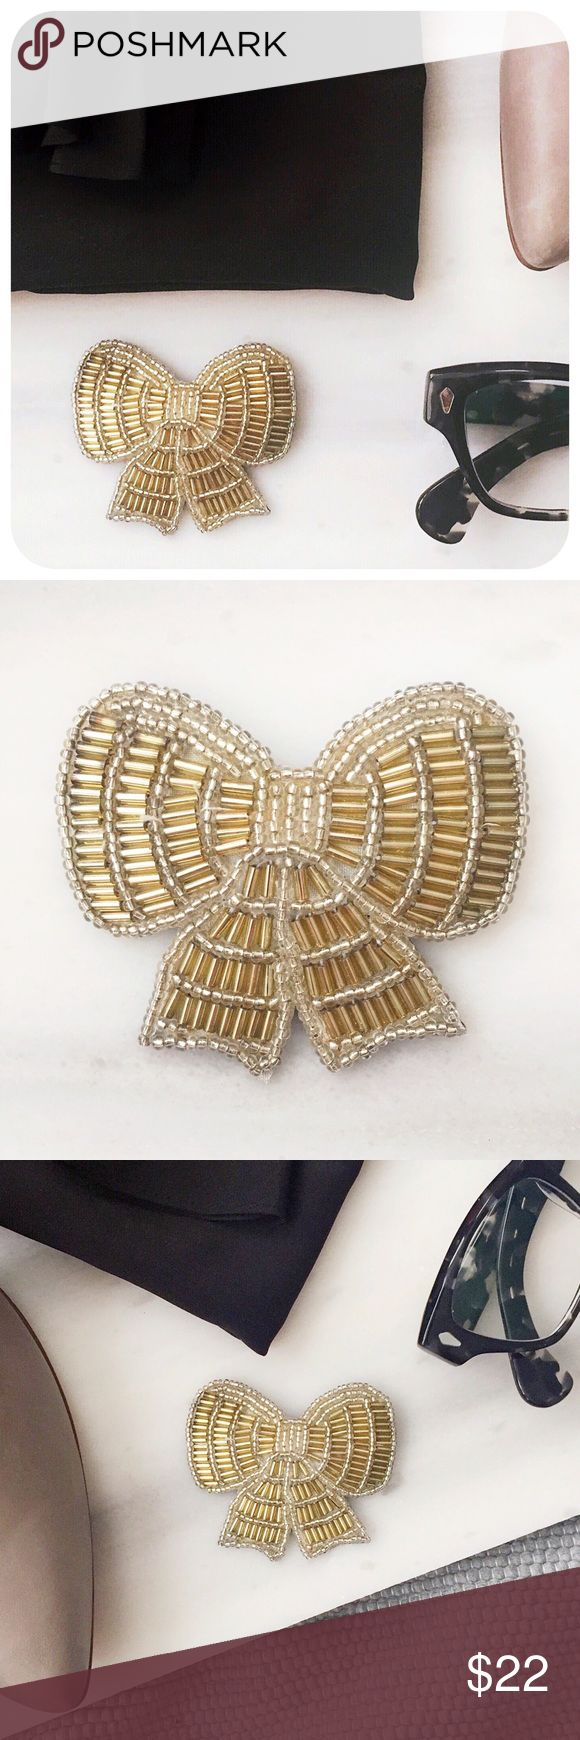 "{{ Vintage }} 1988 Avon Beaded Ribbon Bow Brooch Vintage Avon bow shaped brooch with silver and gold glass seed and bugle beads circa 1980s.   {{ CONDITION }} Excellent - minor scratch on back  {{ MEASUREMENTS }} Width - 2.5"" Height - 2.25""  {{ TAGS }} preppy beaded pin formal metallic hipster cute sophisticated feminine pretty girly flirty costume jewelry accessory geek chic quirky winter gift artsy present cocktail party kitsch cool valentine's day date badge metallic spring  {{ IF YOU…"